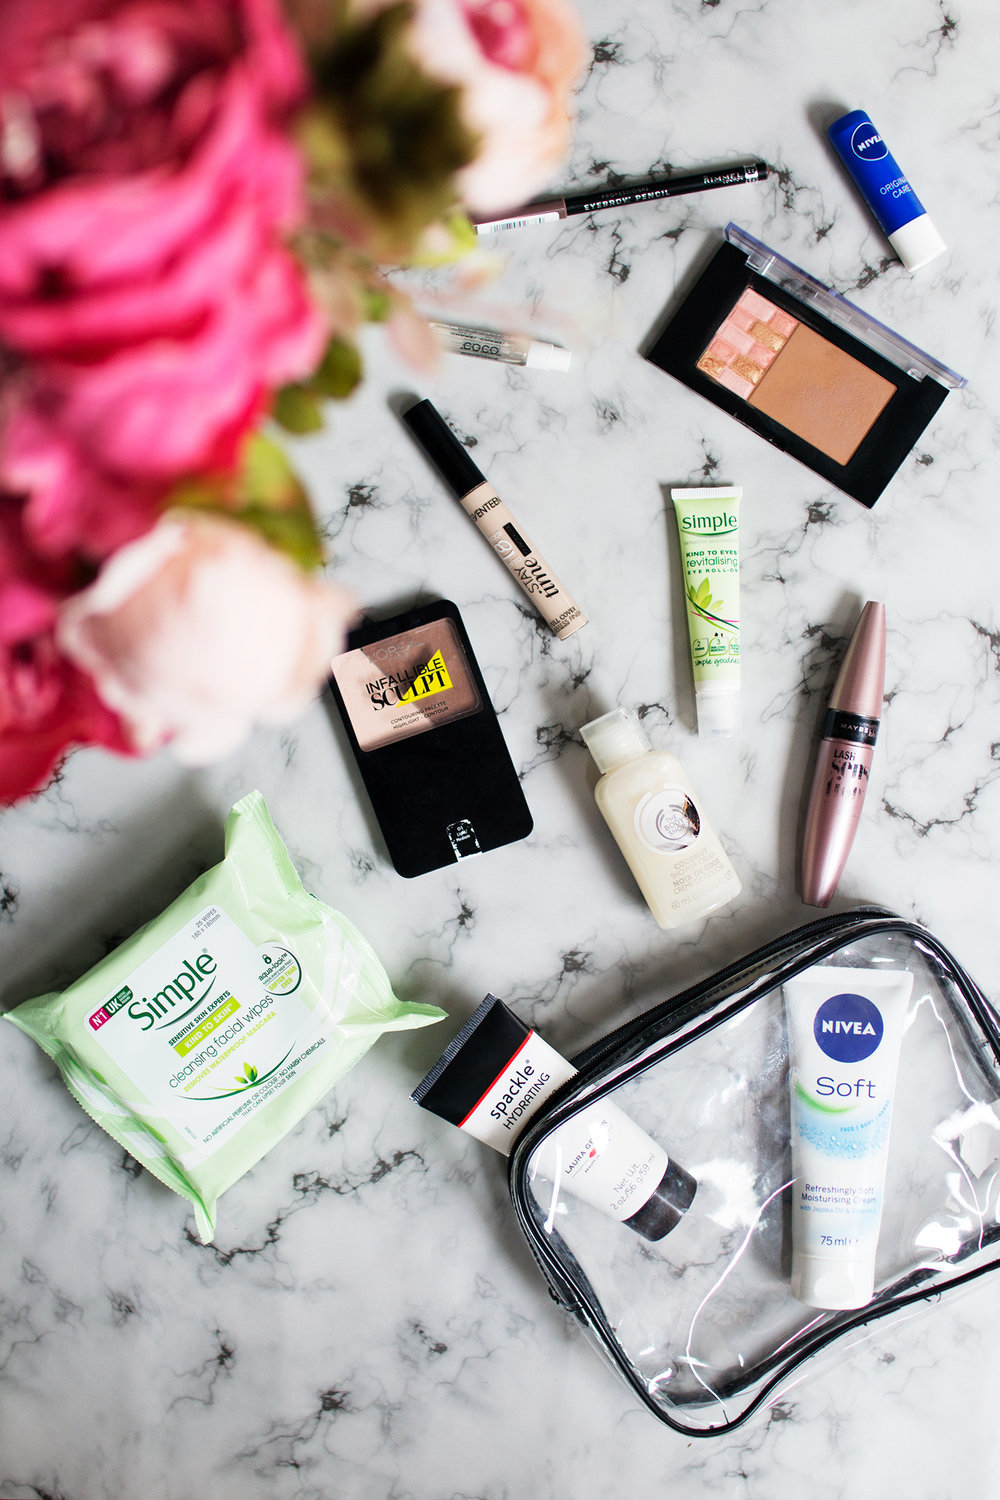 Image of makeup and skincare flatlay on marble